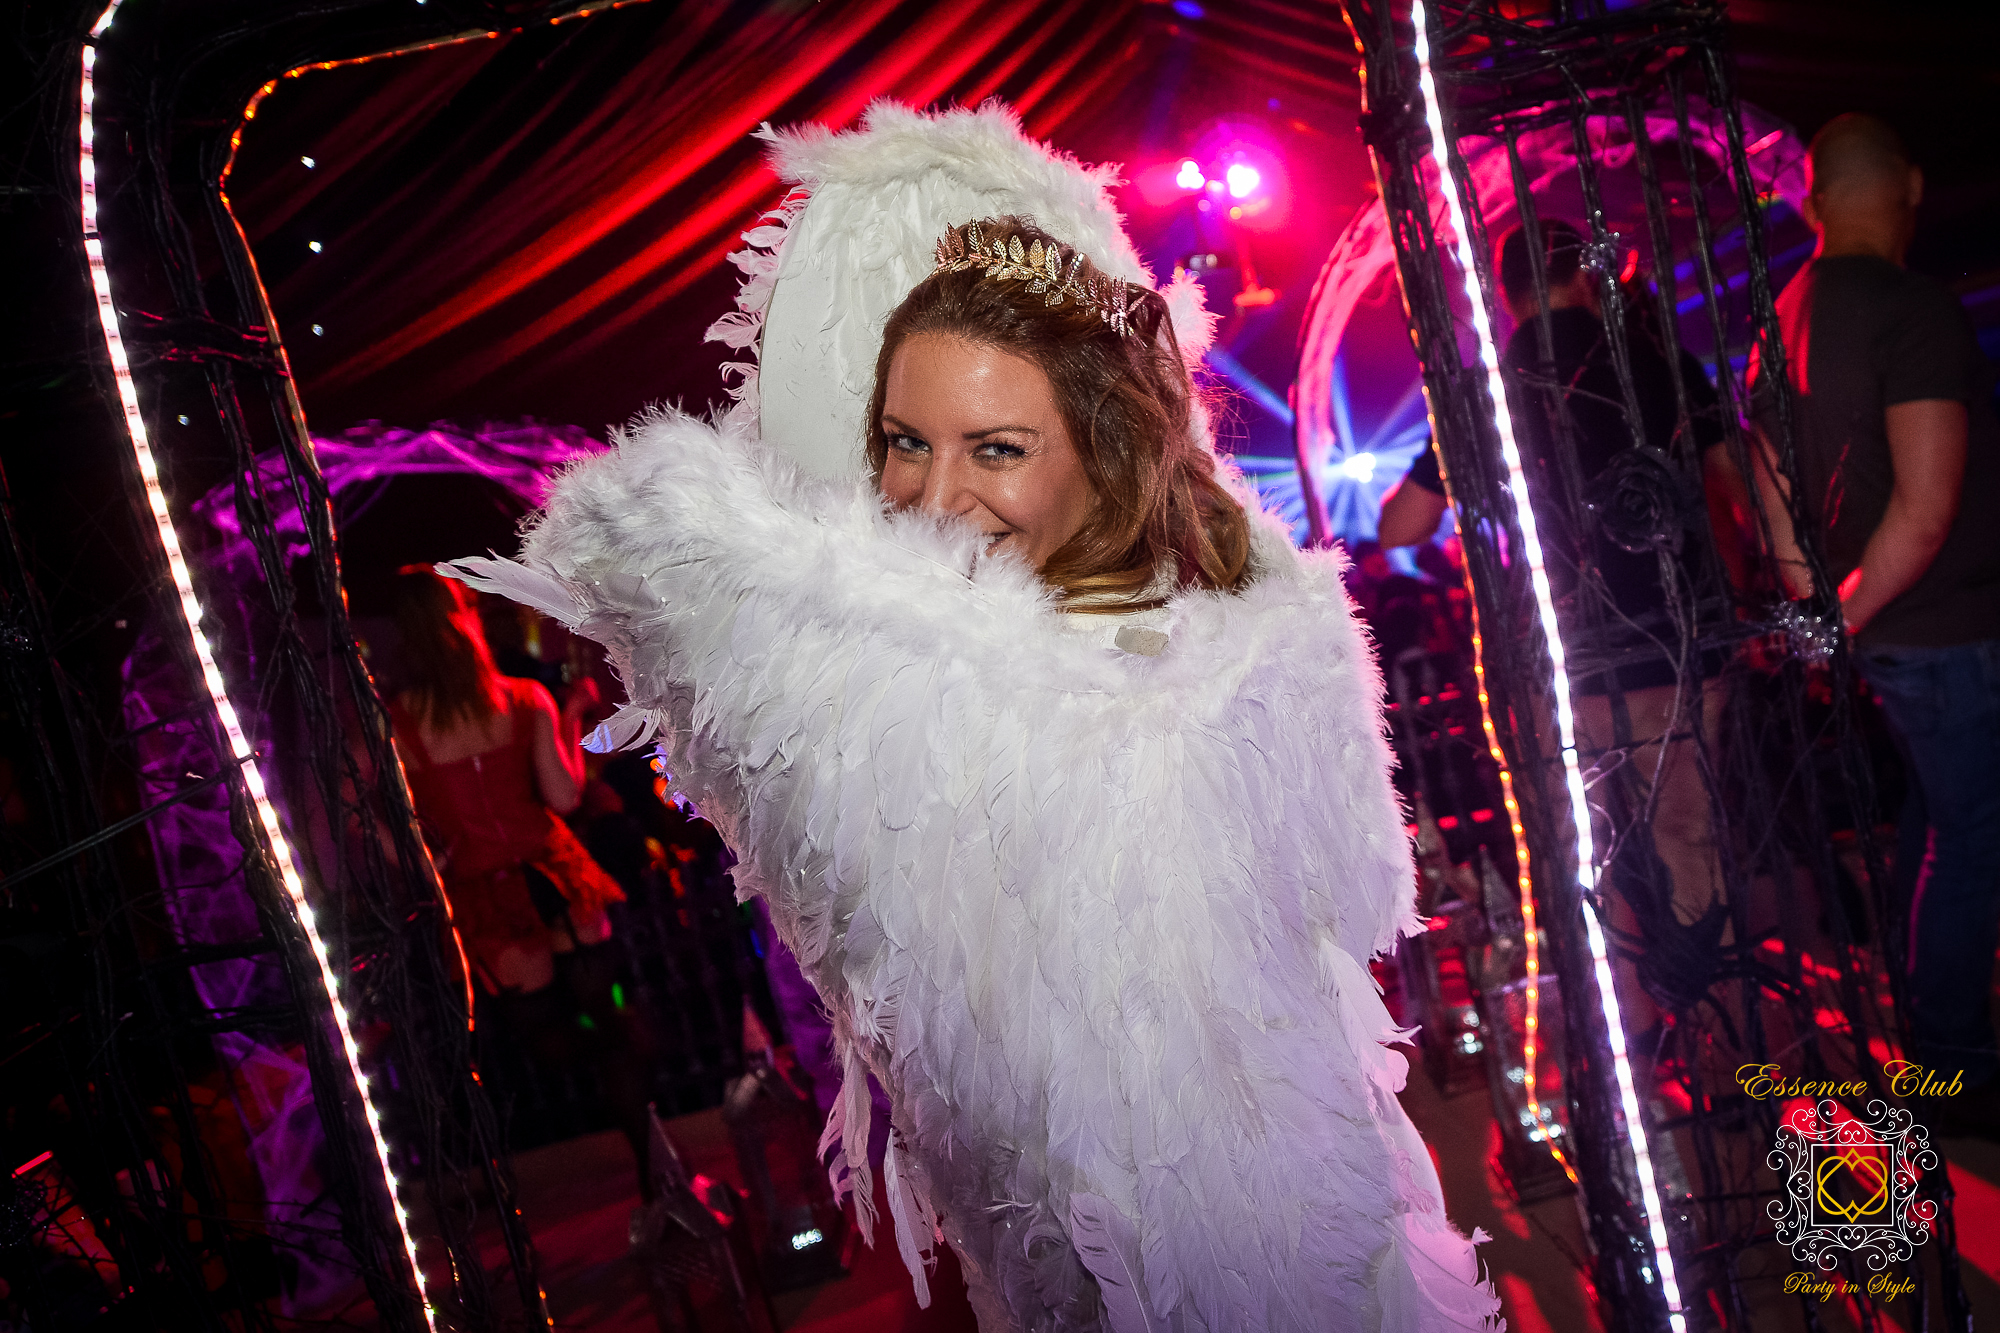 Angel theme party